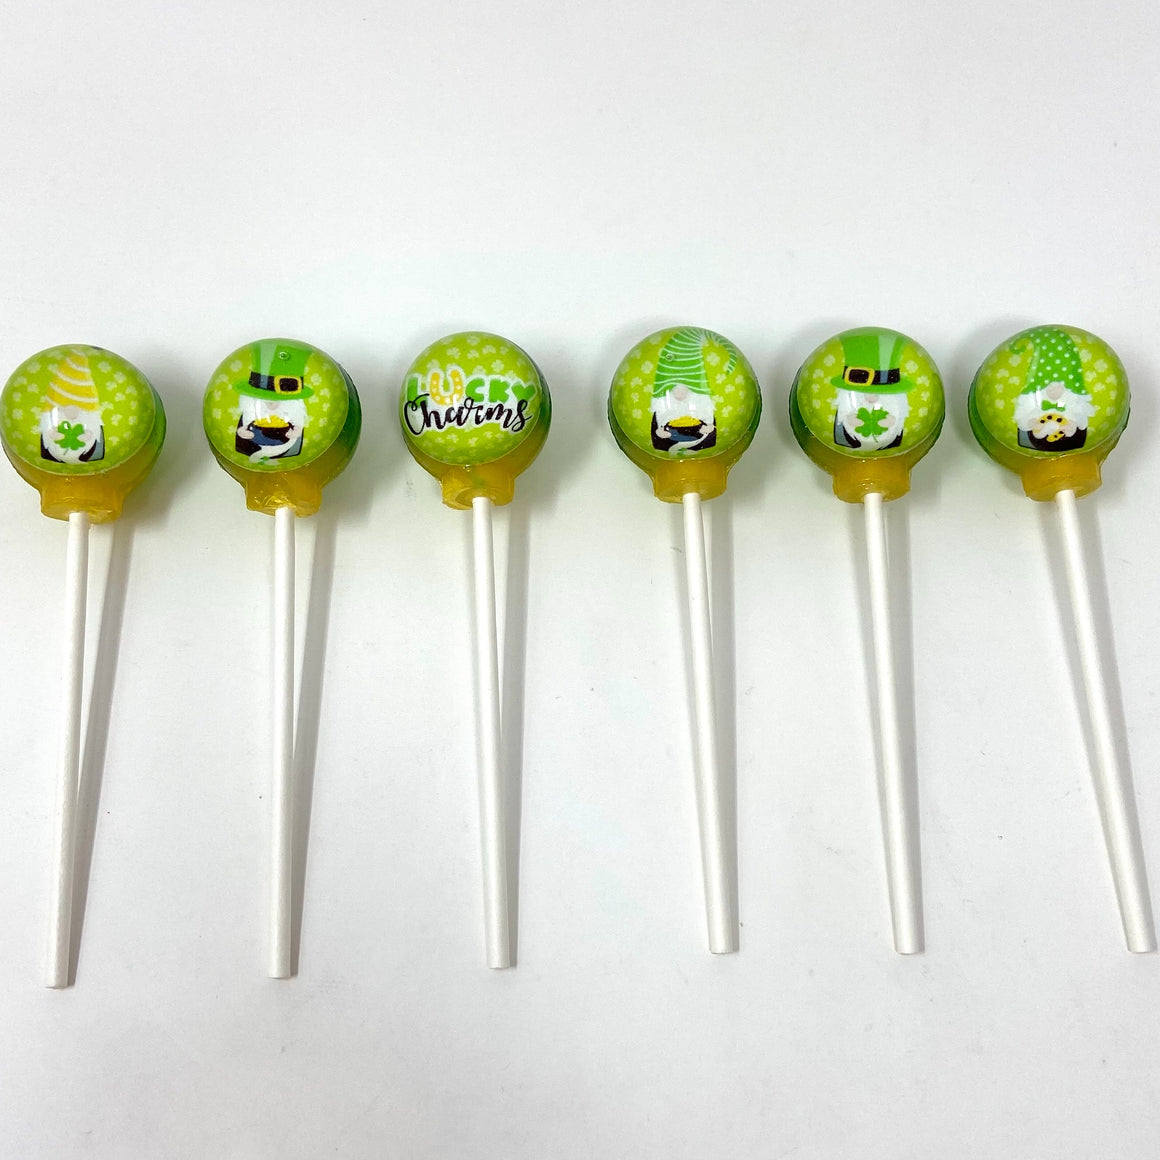 St. Patrick's Gnomes set of 6 lollipops by I Want Candy!